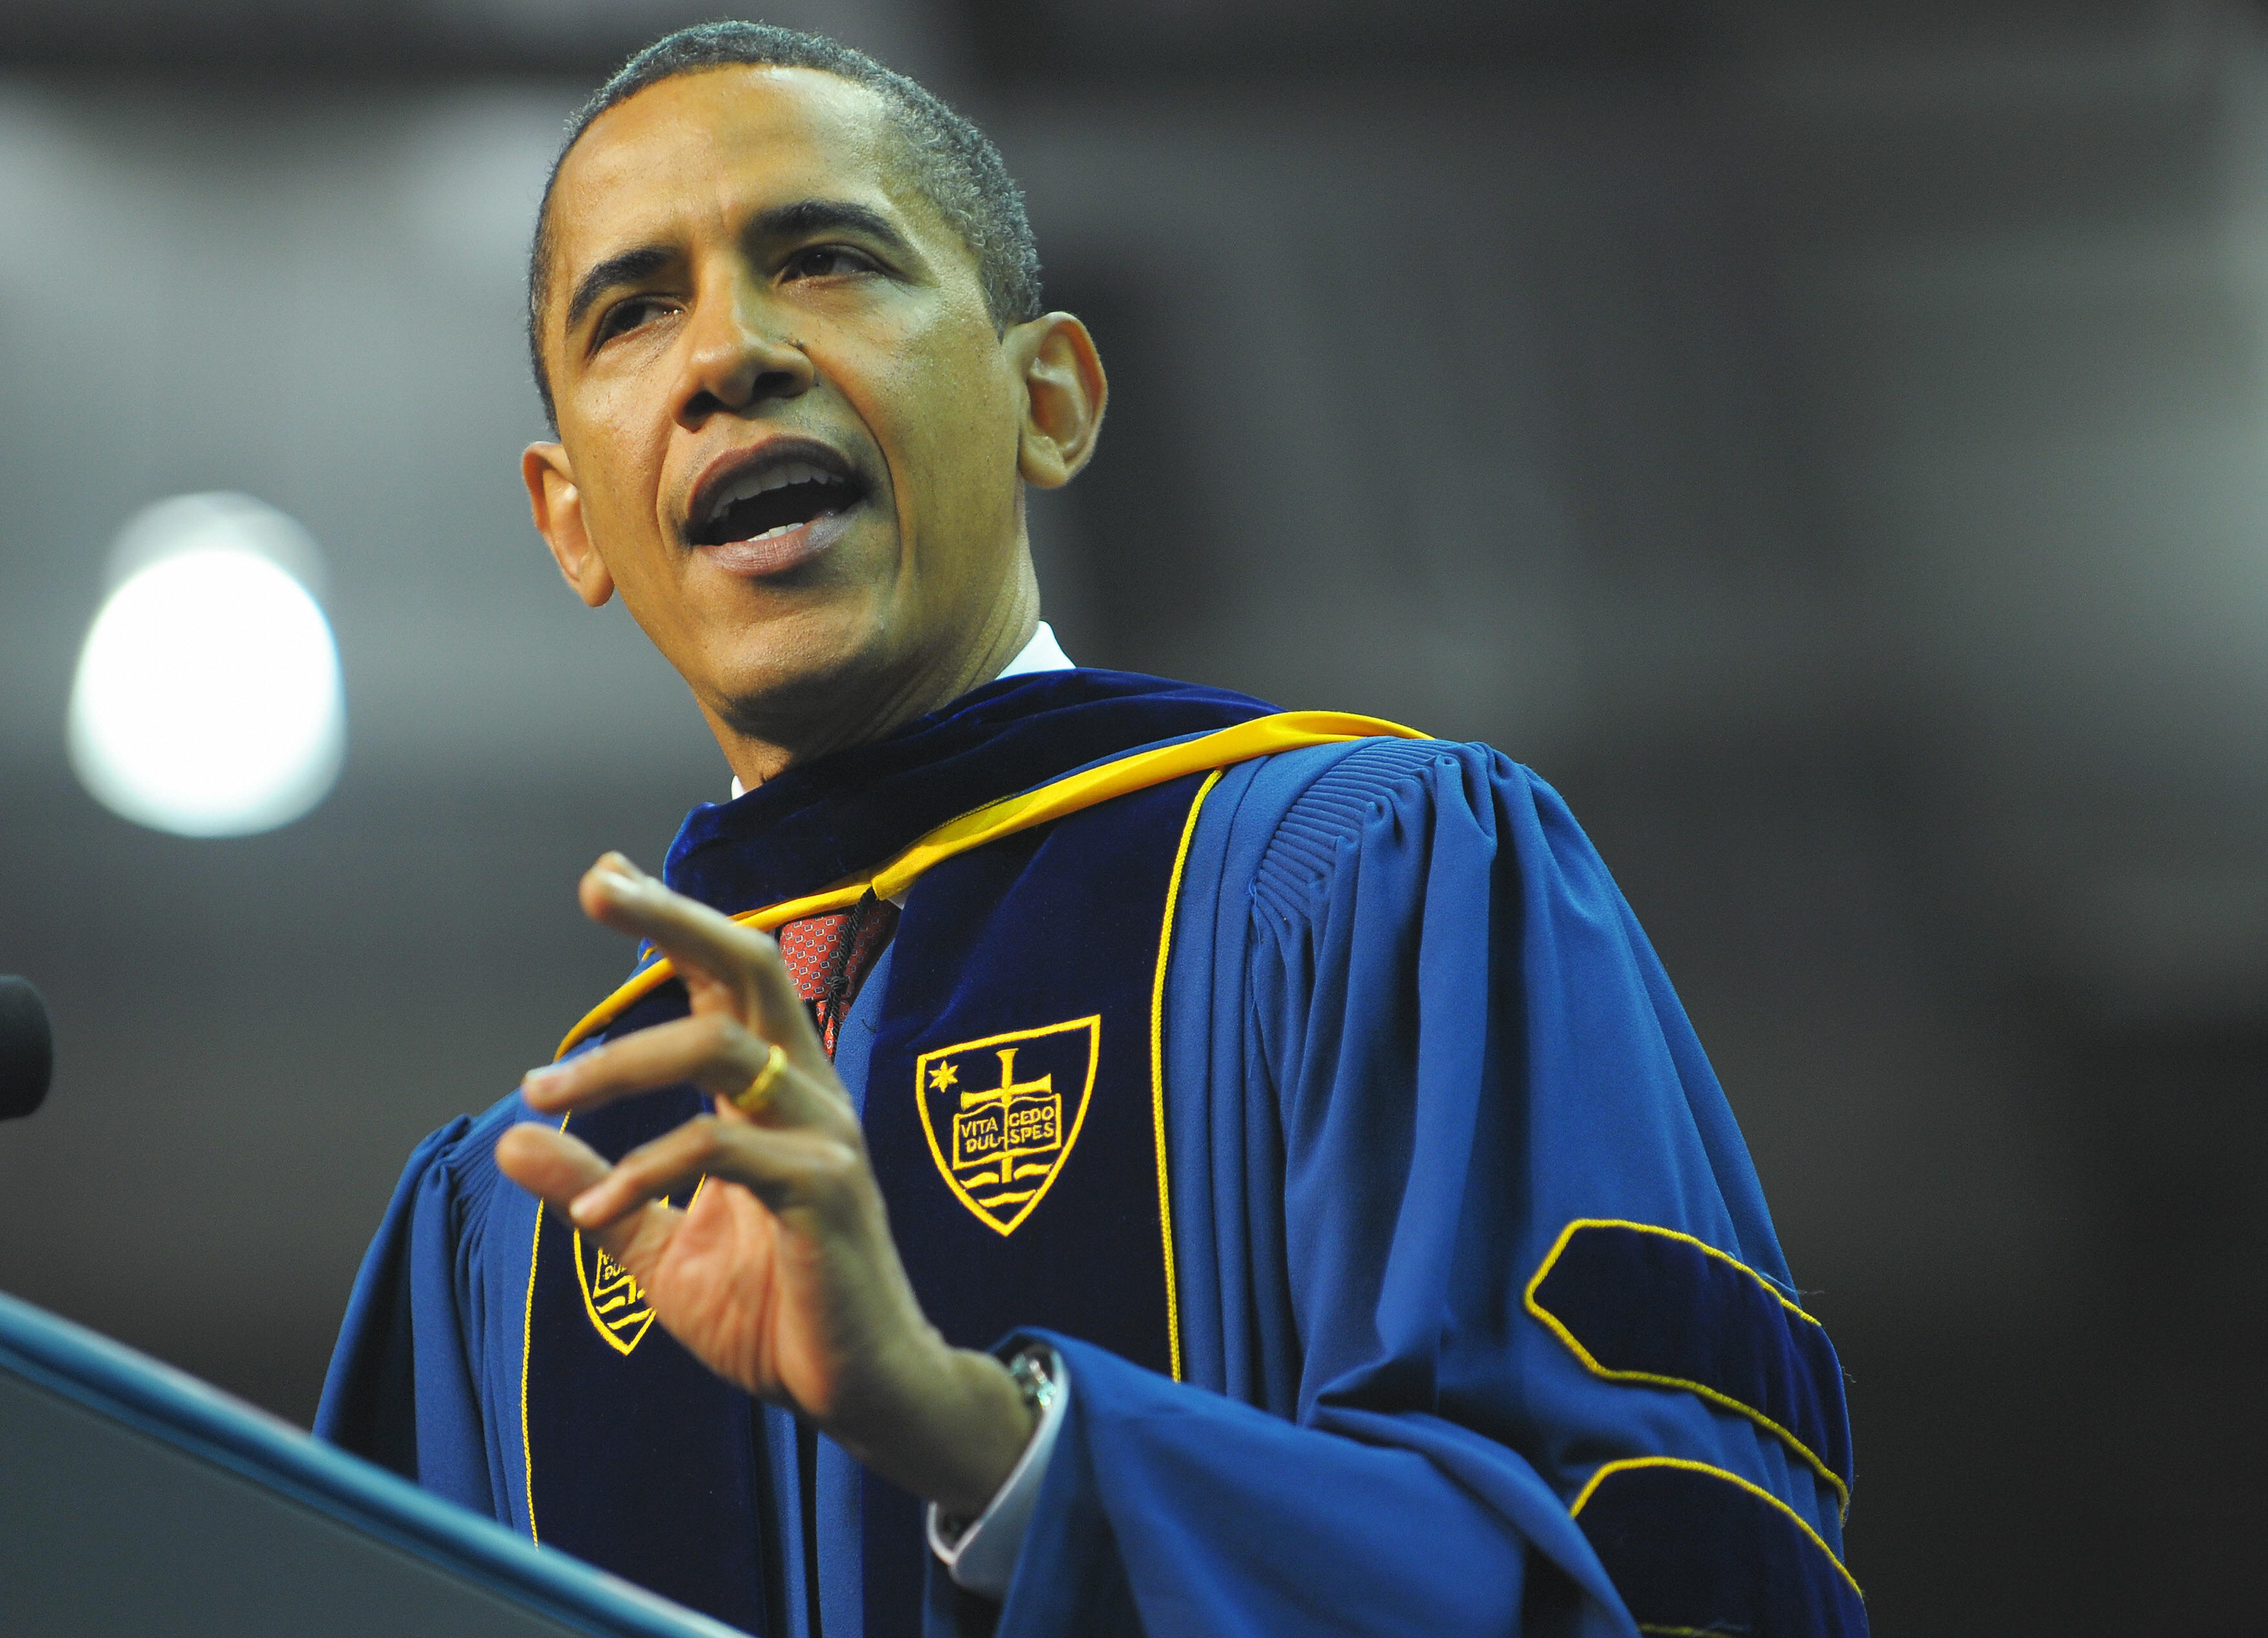 US President Barack Obama speaks during the commencement ceremony in the Joyce Center of Notre Dame University in South Bend, Indiana, May 17, 2009.